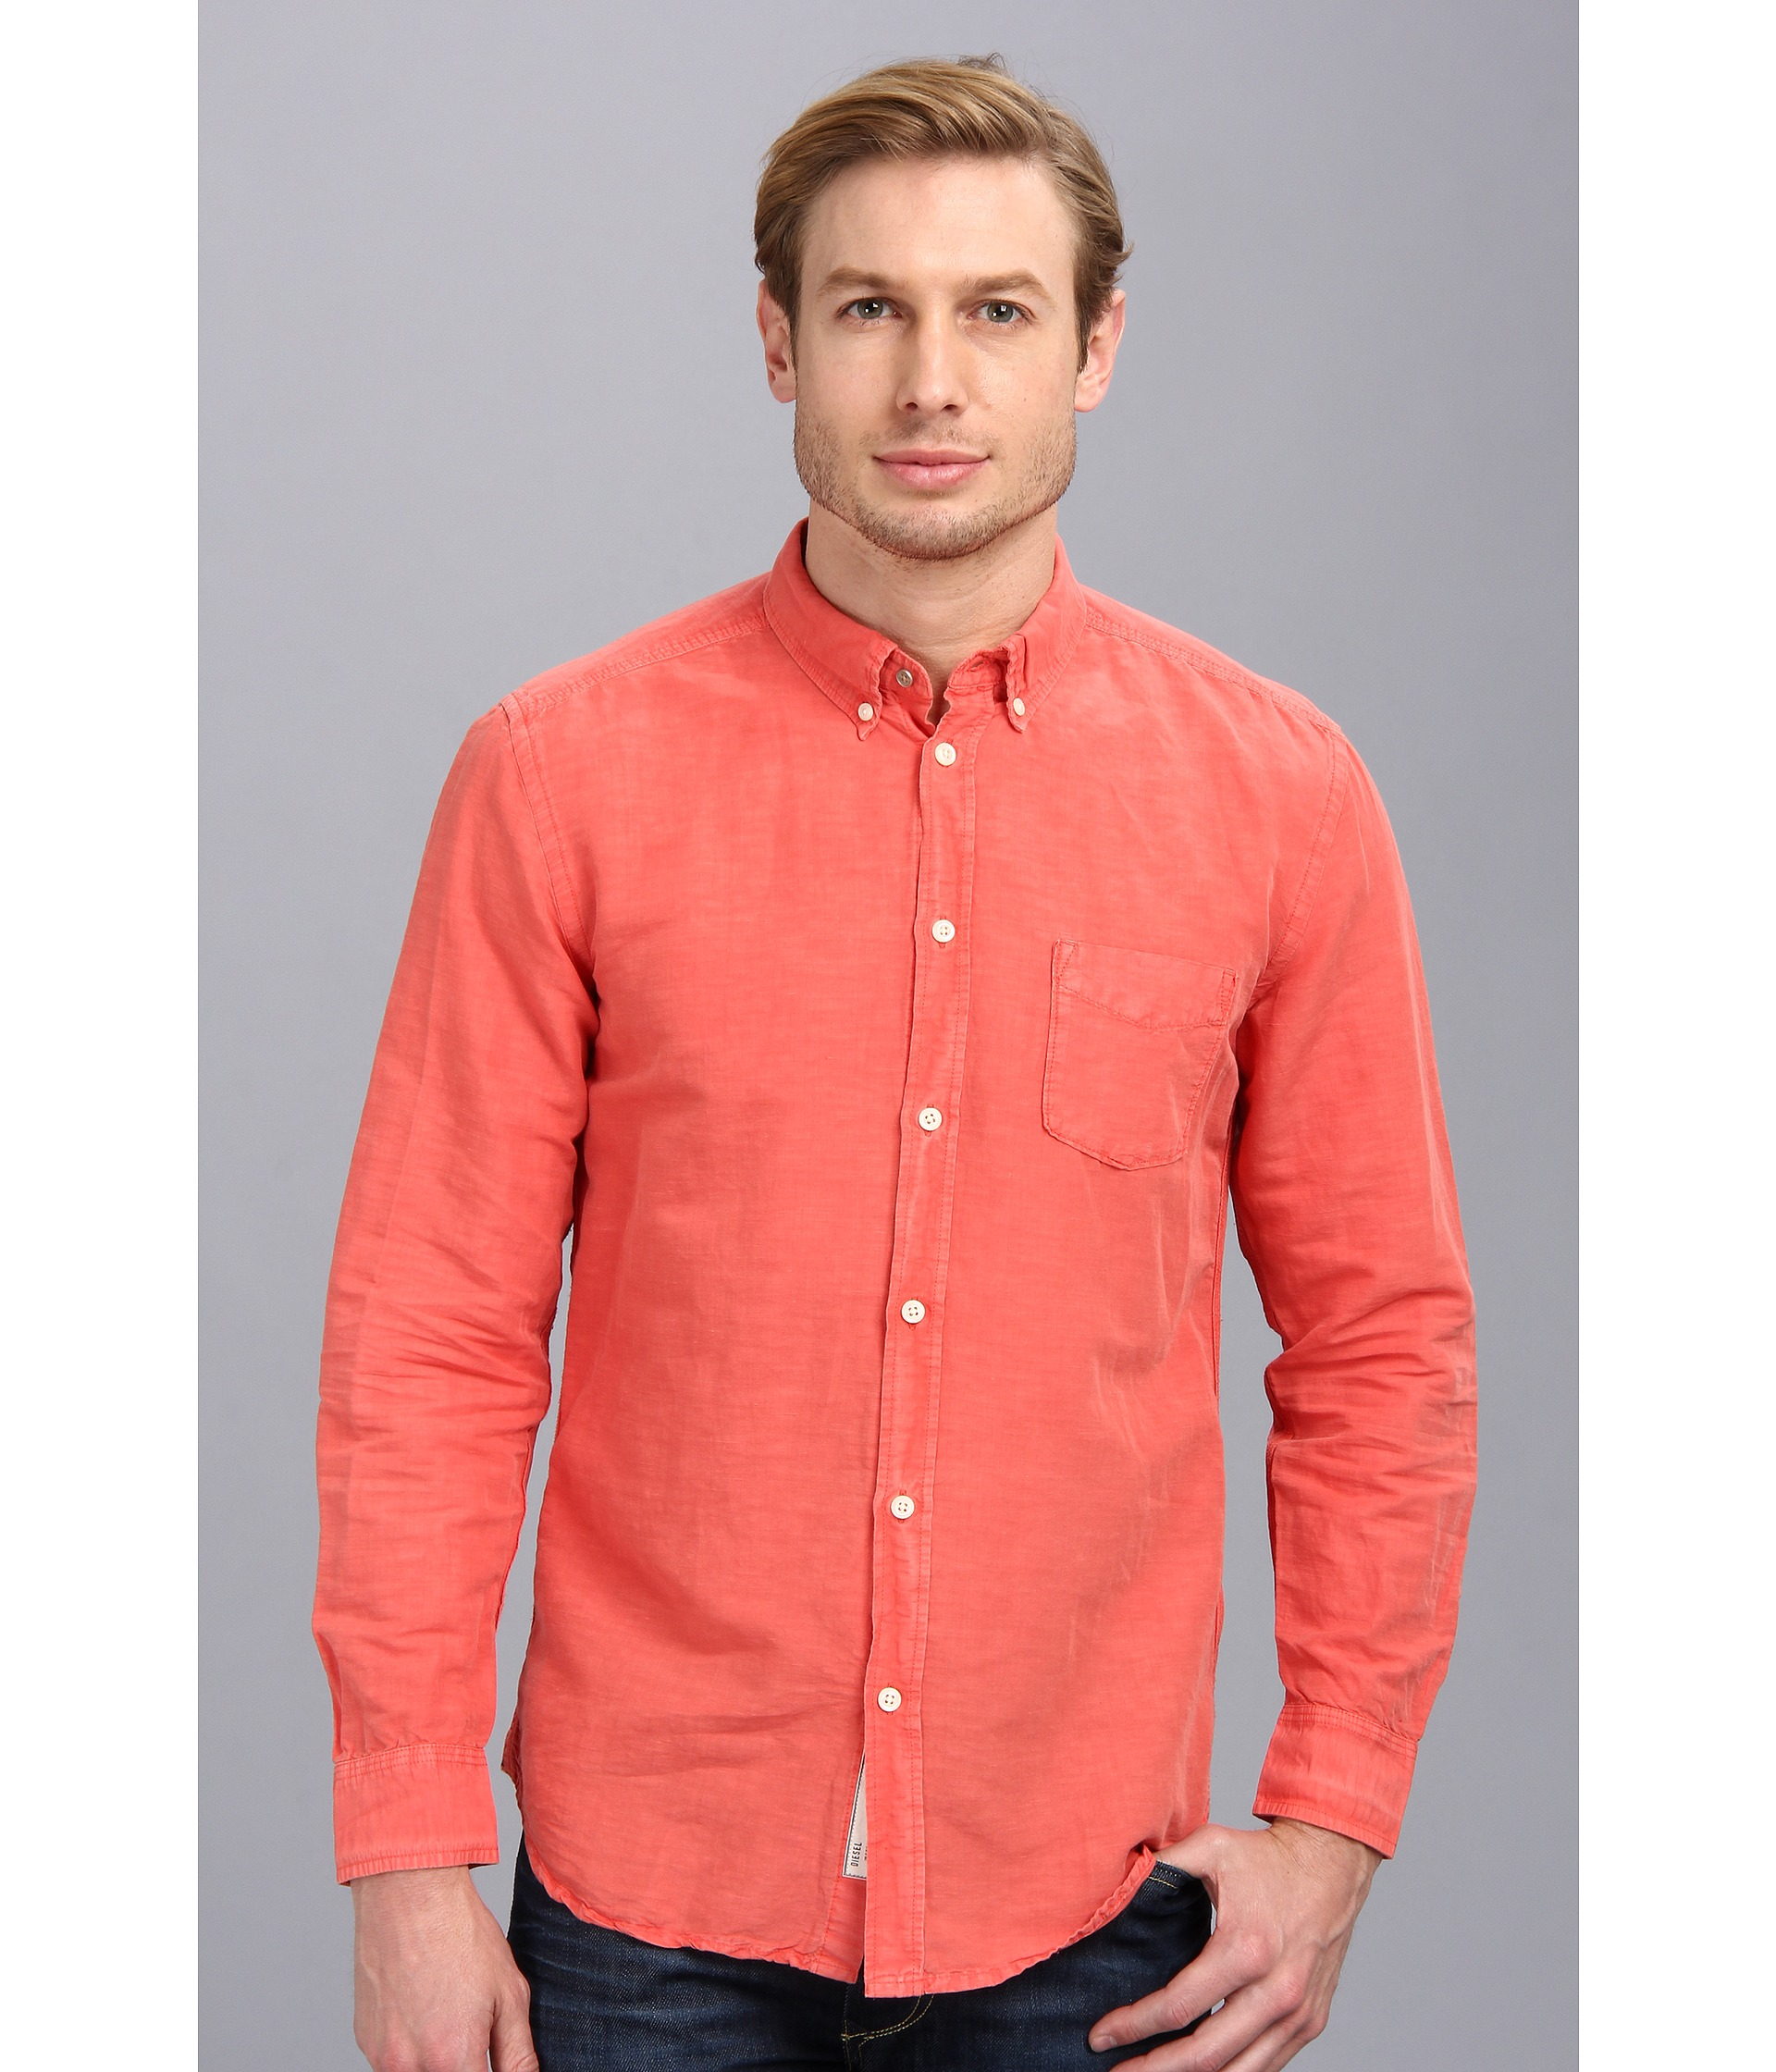 Coral Mens Button Up Shirt Is Shirt